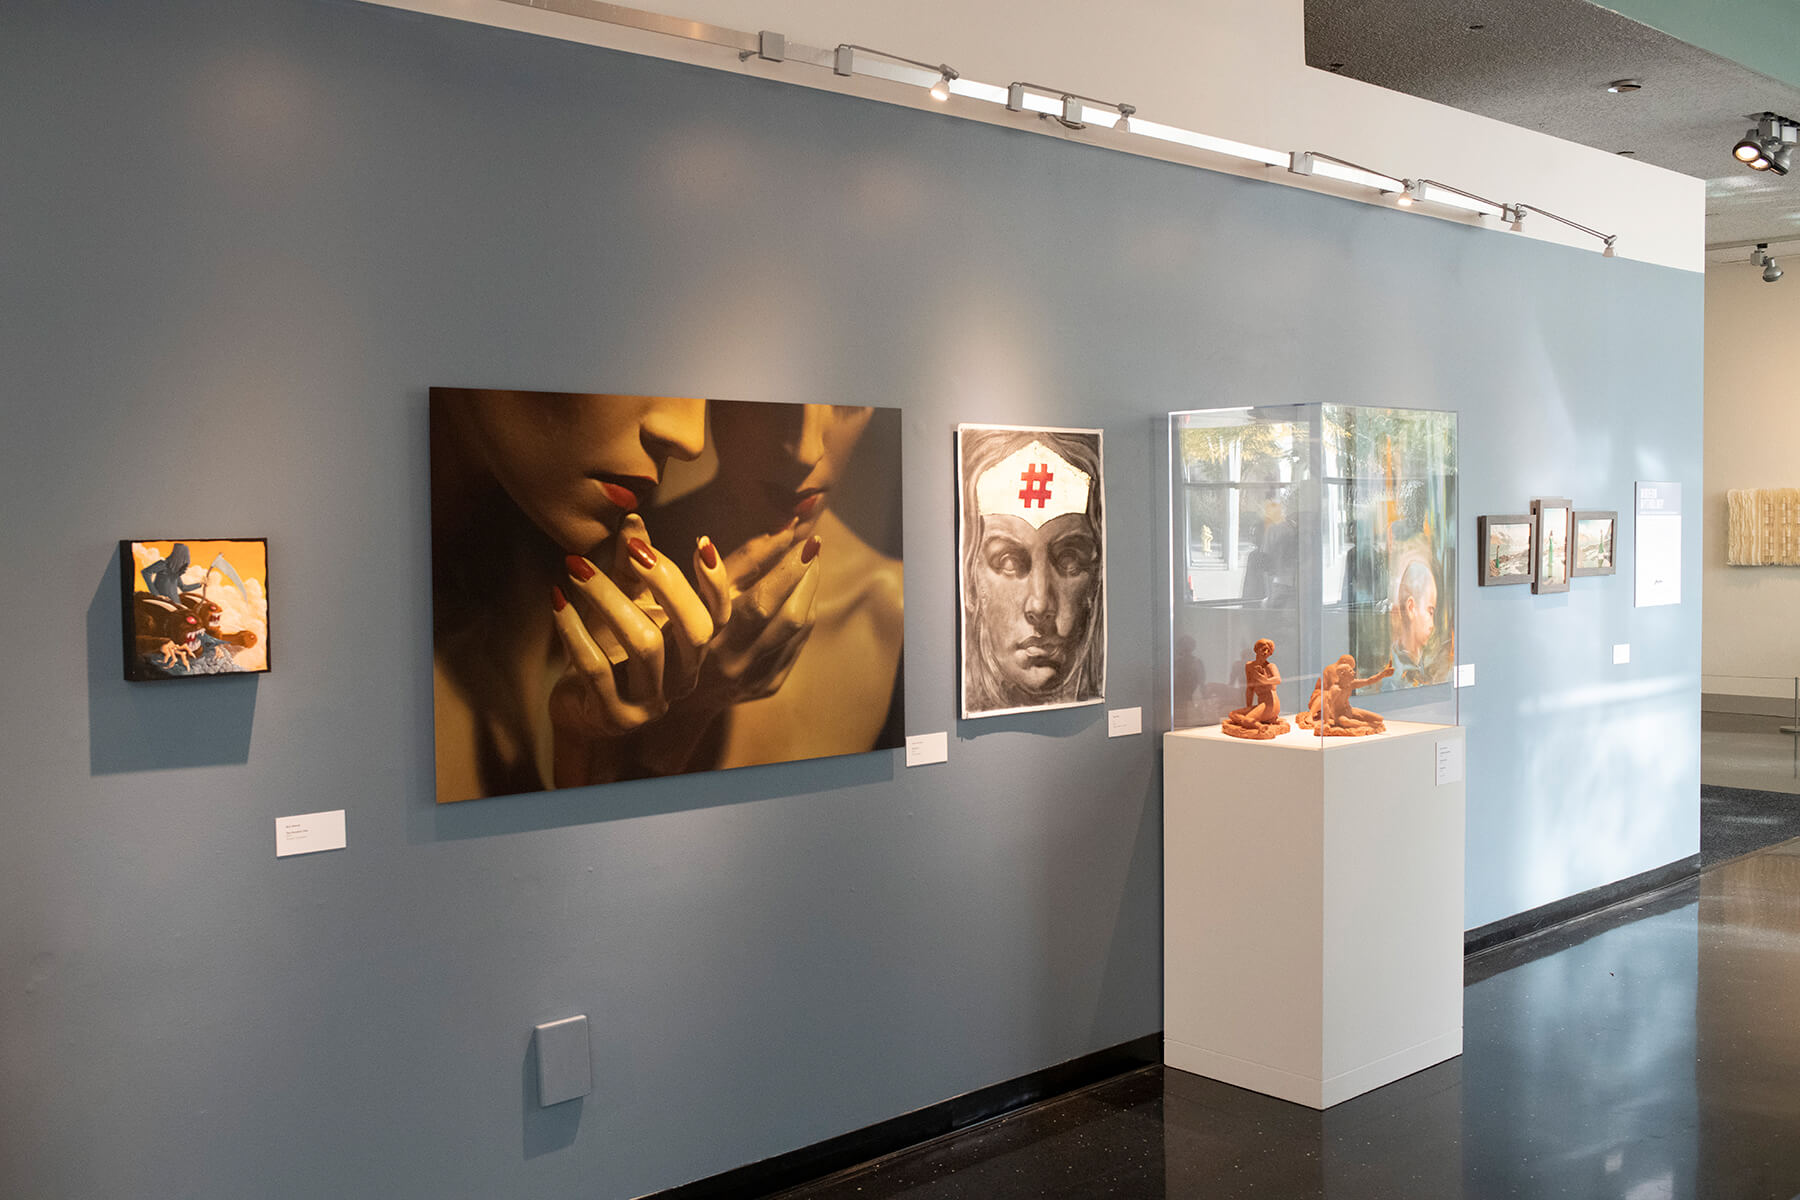 Various faculty art pieces — including photography, drawing, sculpture, and more — on display at the Bellevue Art Museum.